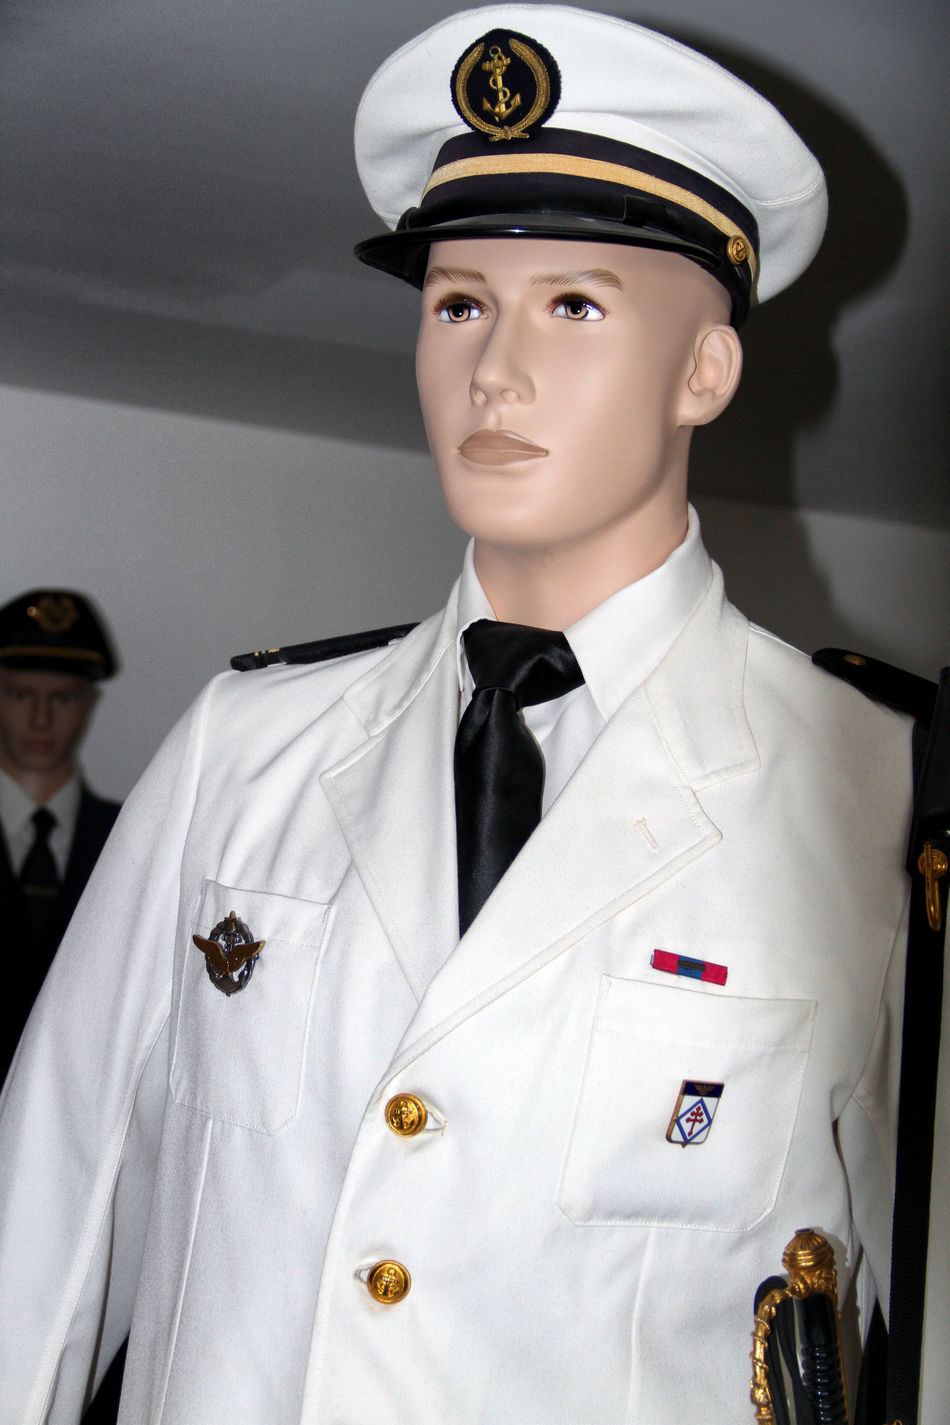 Captain Dummy Dummy Heads Dummy Photos Marin Ship's Mast Ship's Master Uniform UniformPhotography